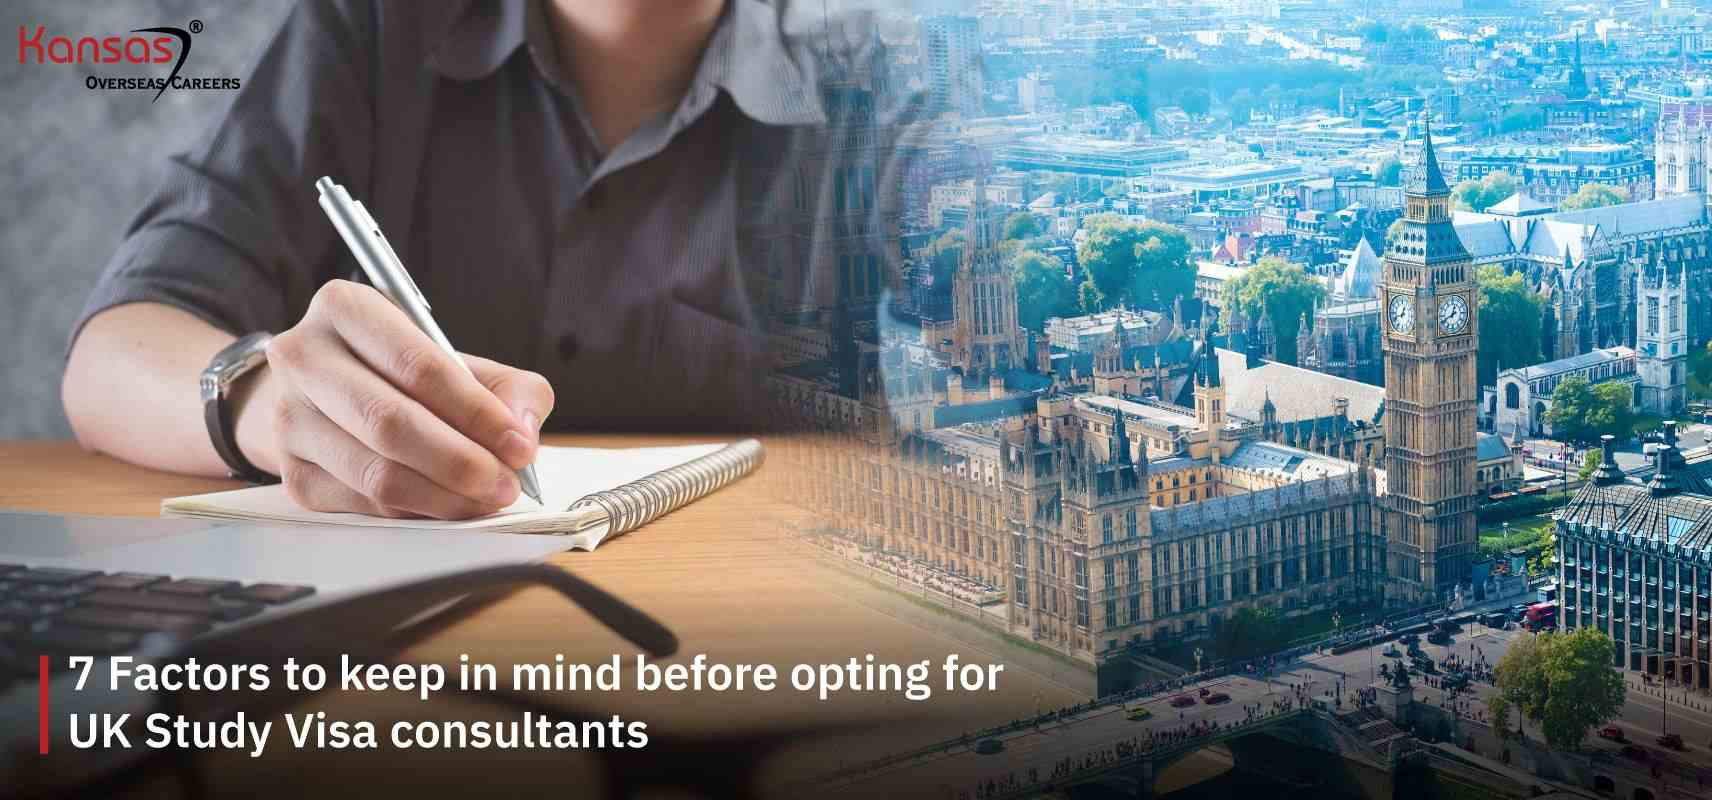 7-Factors-to-keep-in-mind-before-opting-for-UK-Study-Visa-consultants